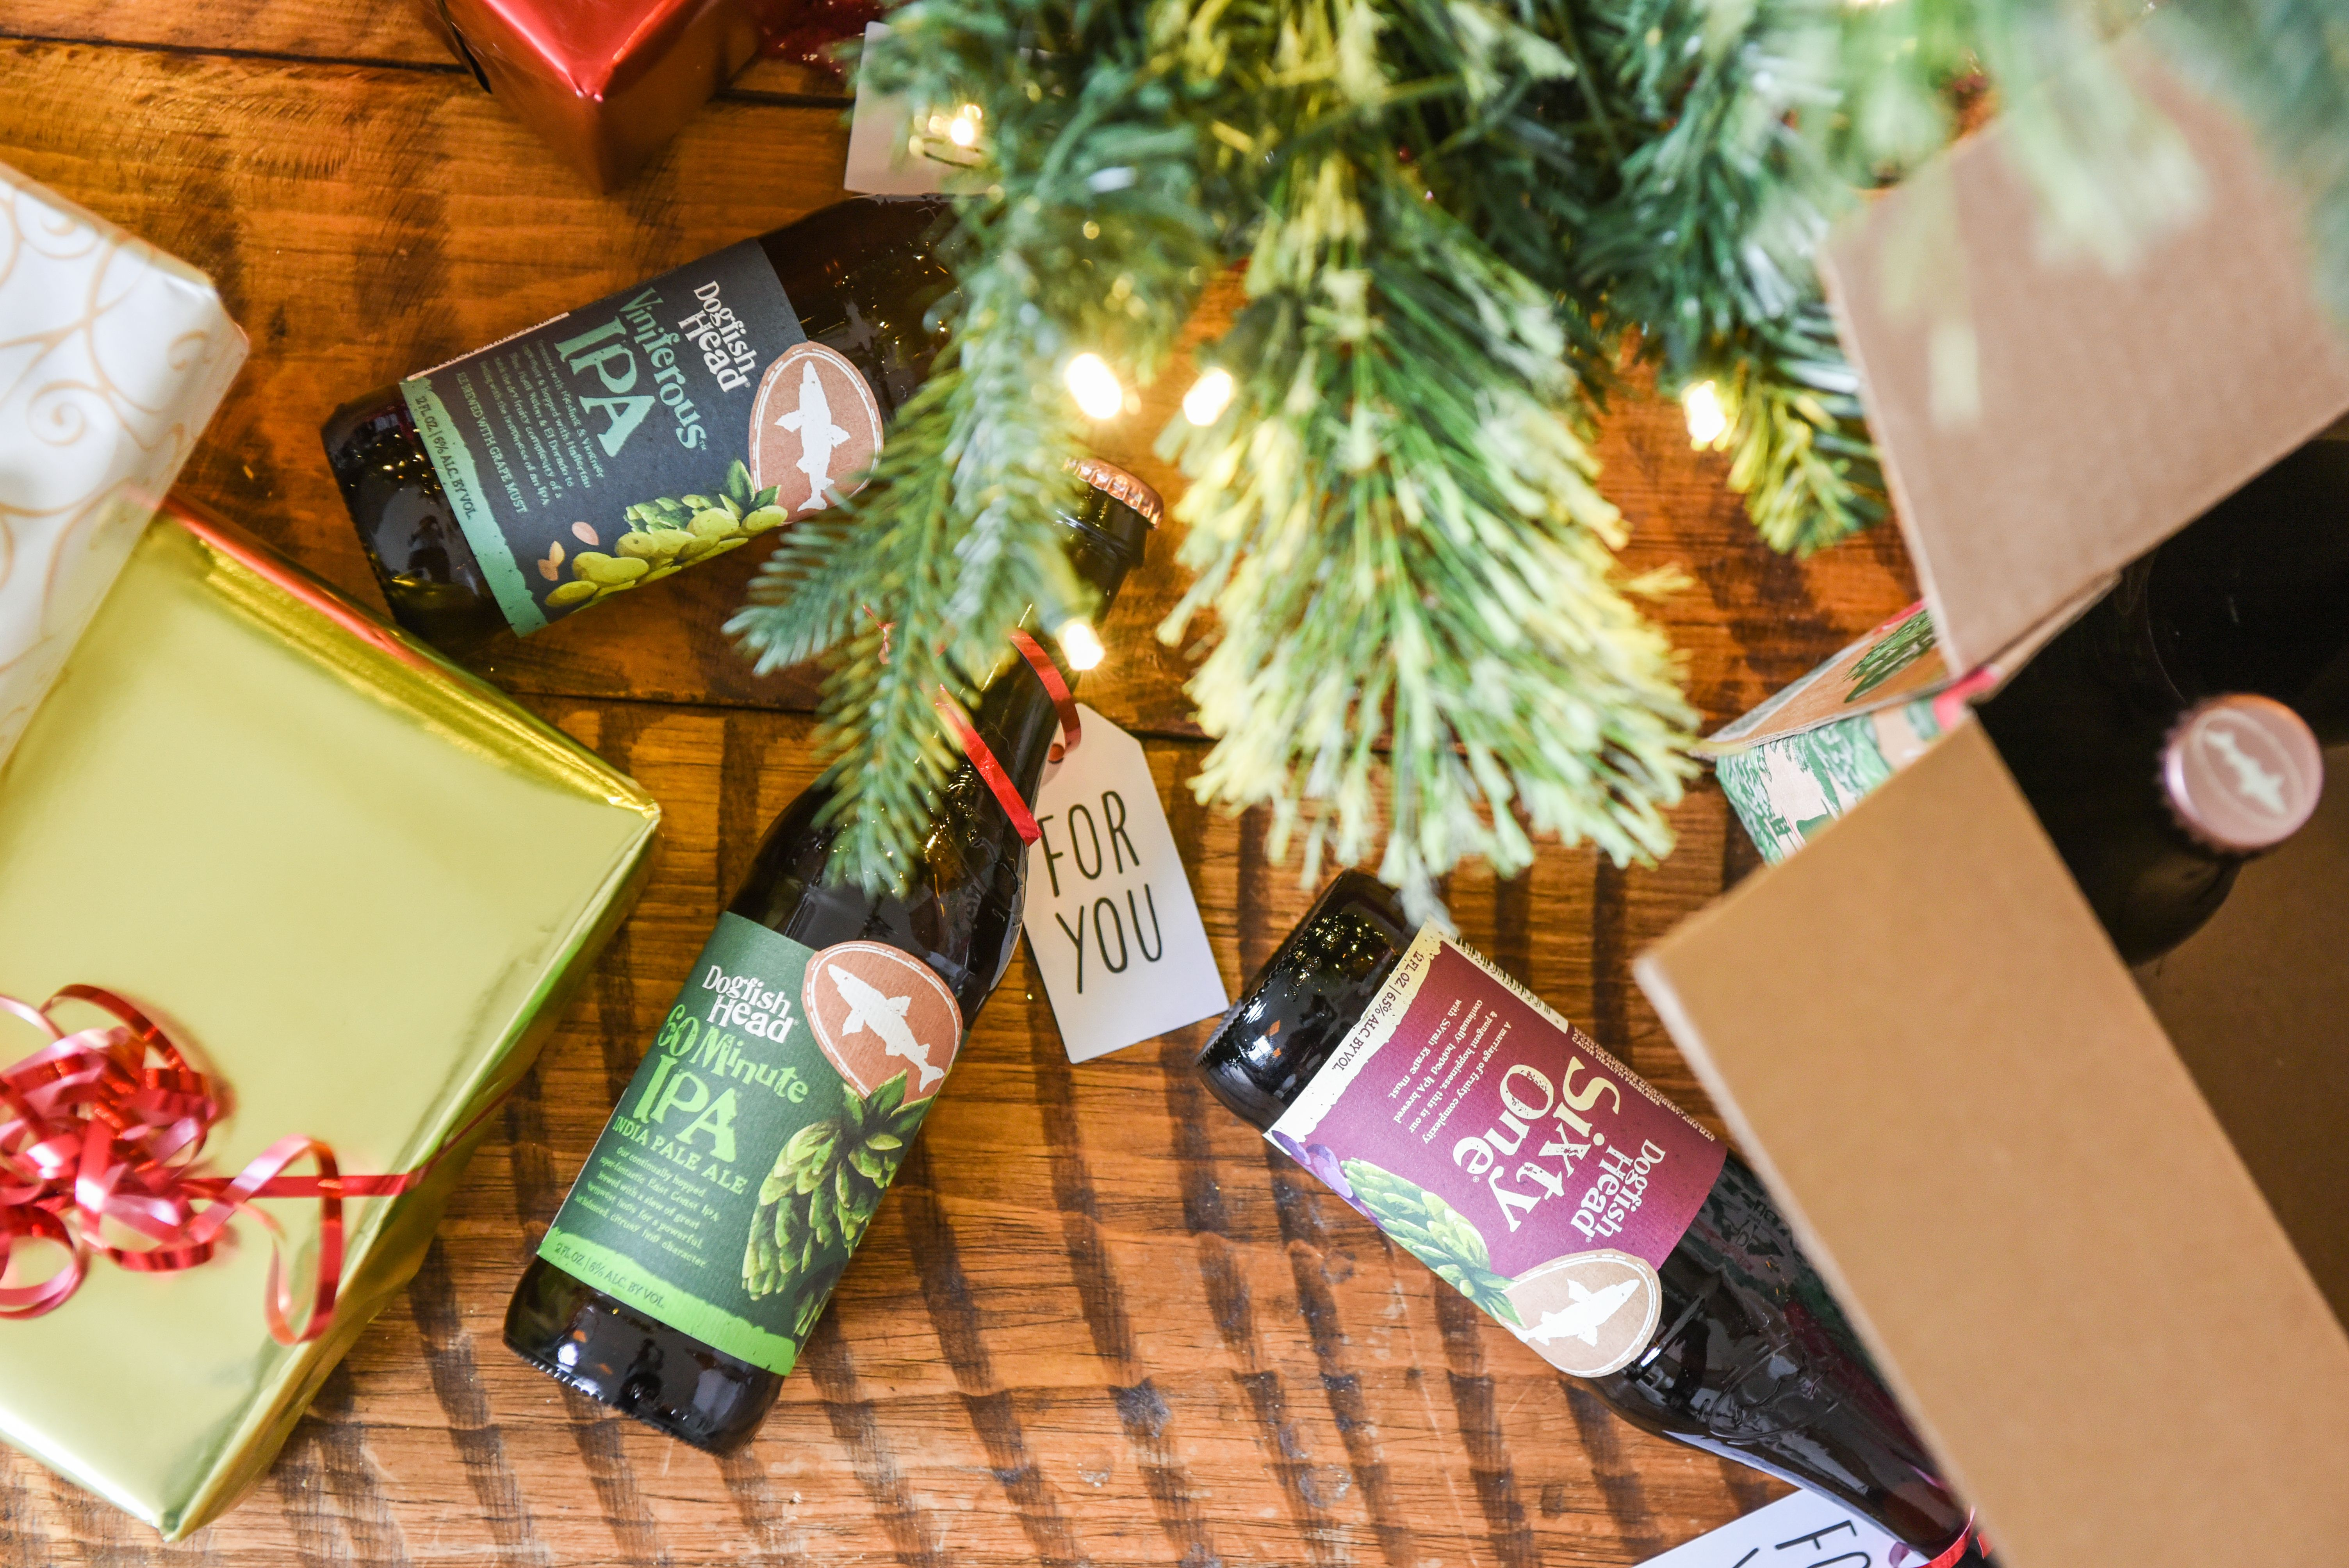 Dogfish Head Releasing Ipas For The Holidays Variety 12 Pack Mybeerbuzz Com Bringing Good Beers Good People Together Dogfish Head Holiday Packing Holiday